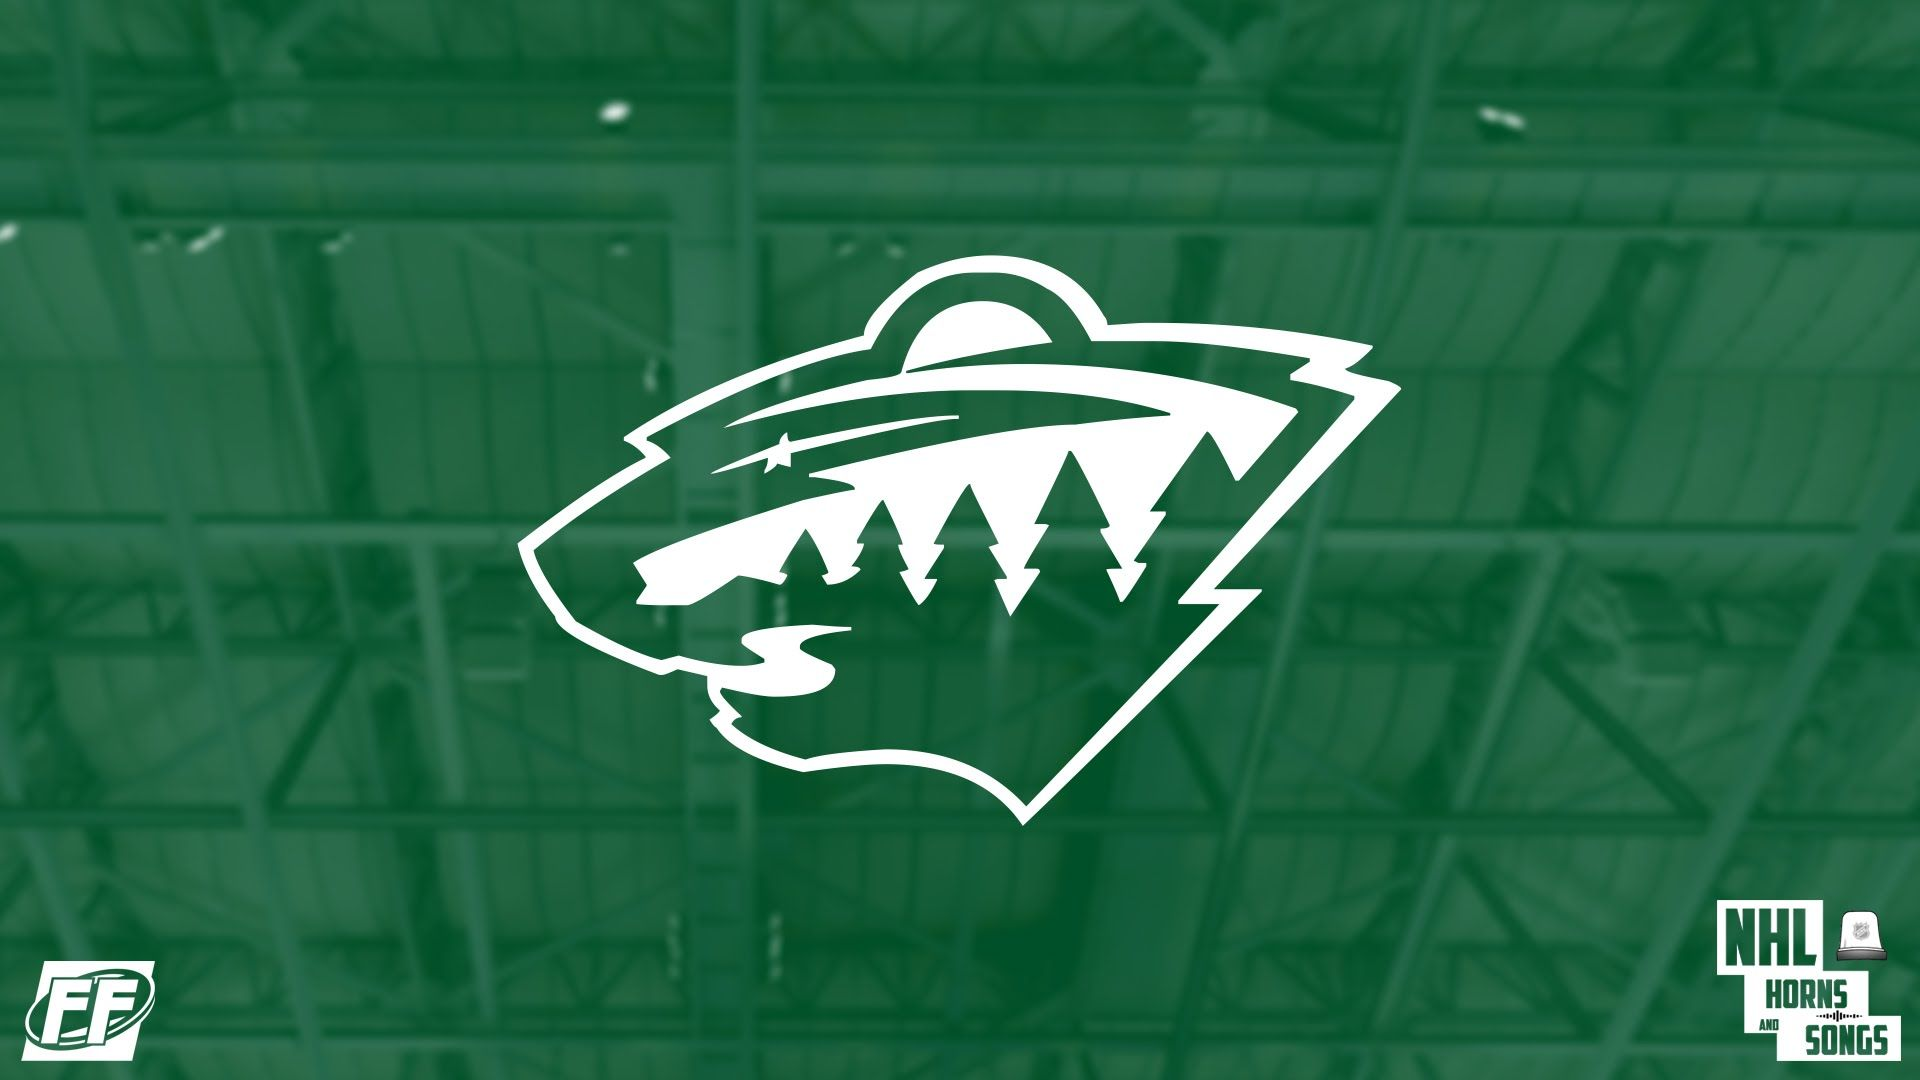 Download Free Minnesota Wild Wallpapers - Page 3 of 3 - wallpaper.wiki